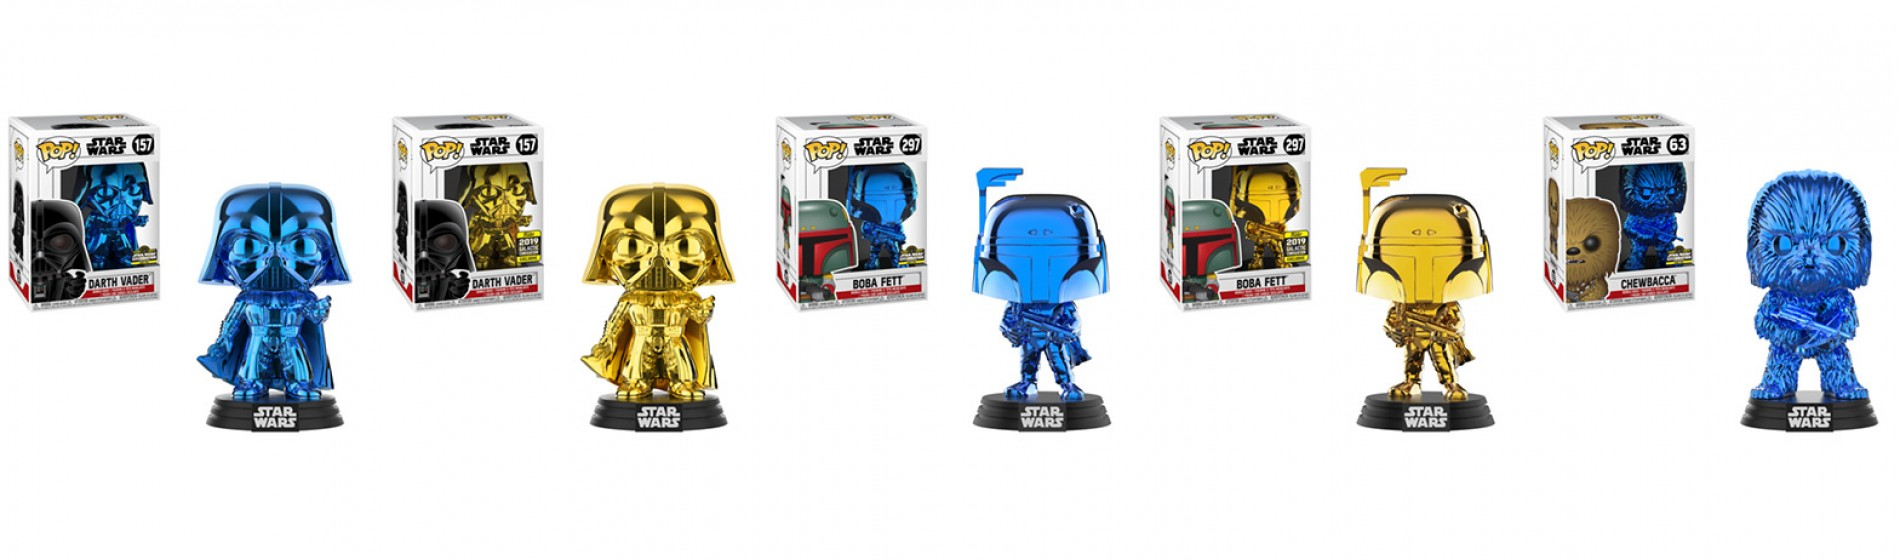 Star Wars Celebration Funko Exclusives